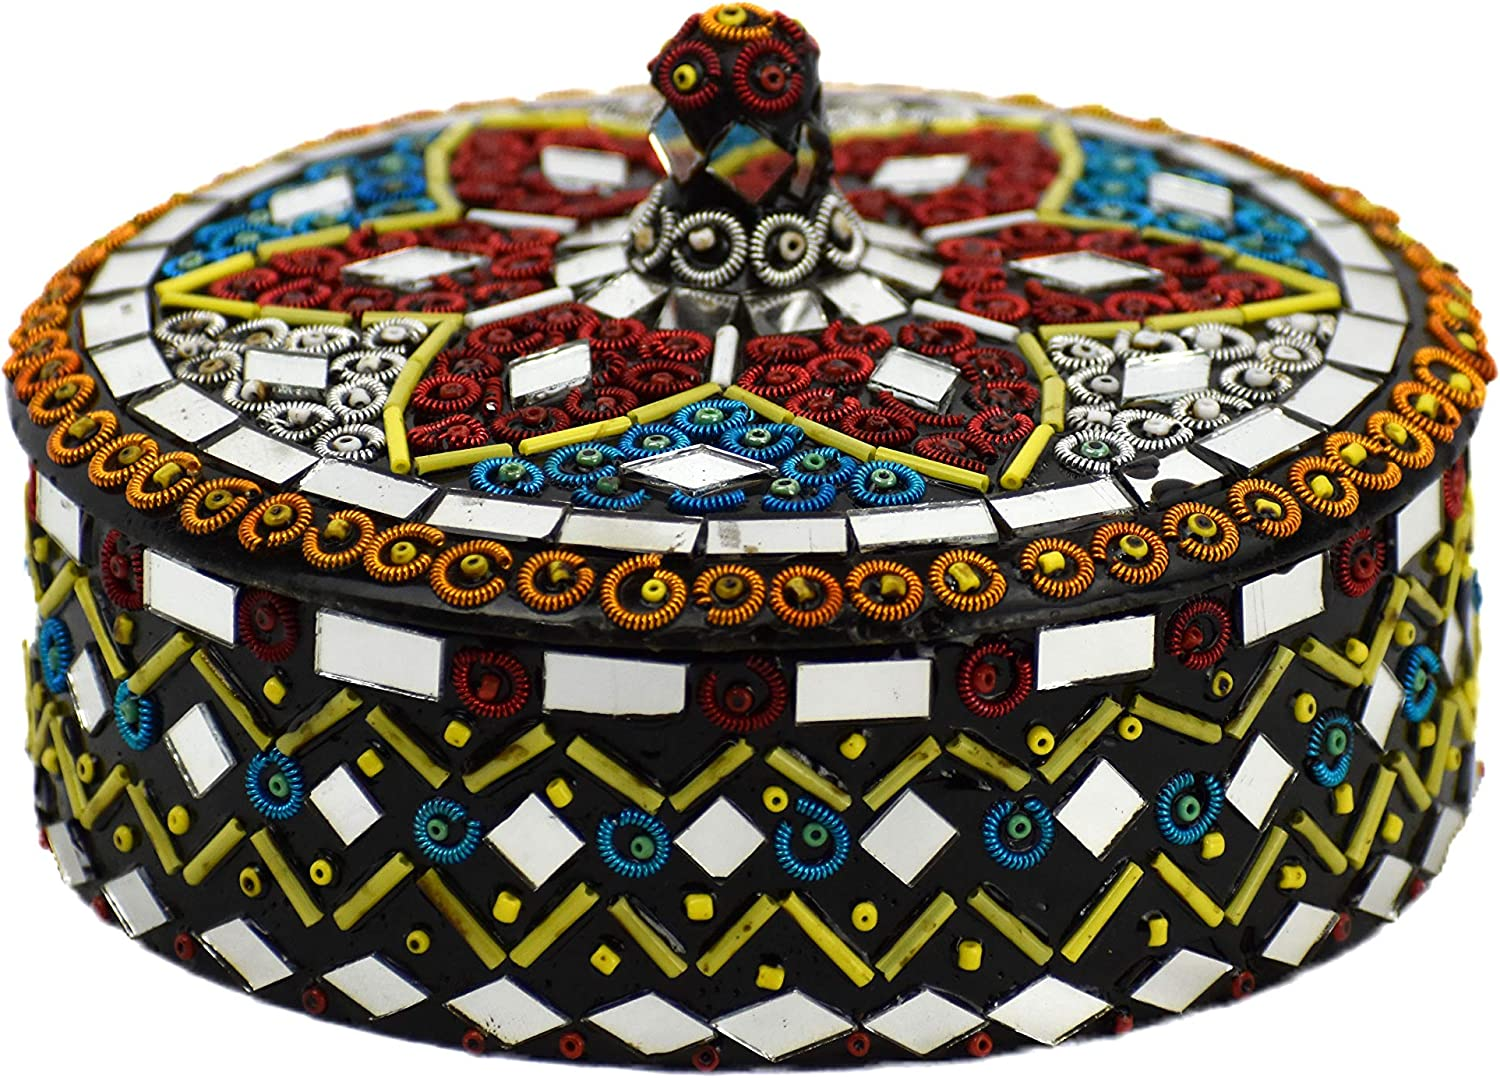 Shisha Moti Craft Decorative Gifts Bowl with Beads Lid Mirror Wor Max 58% OFF and